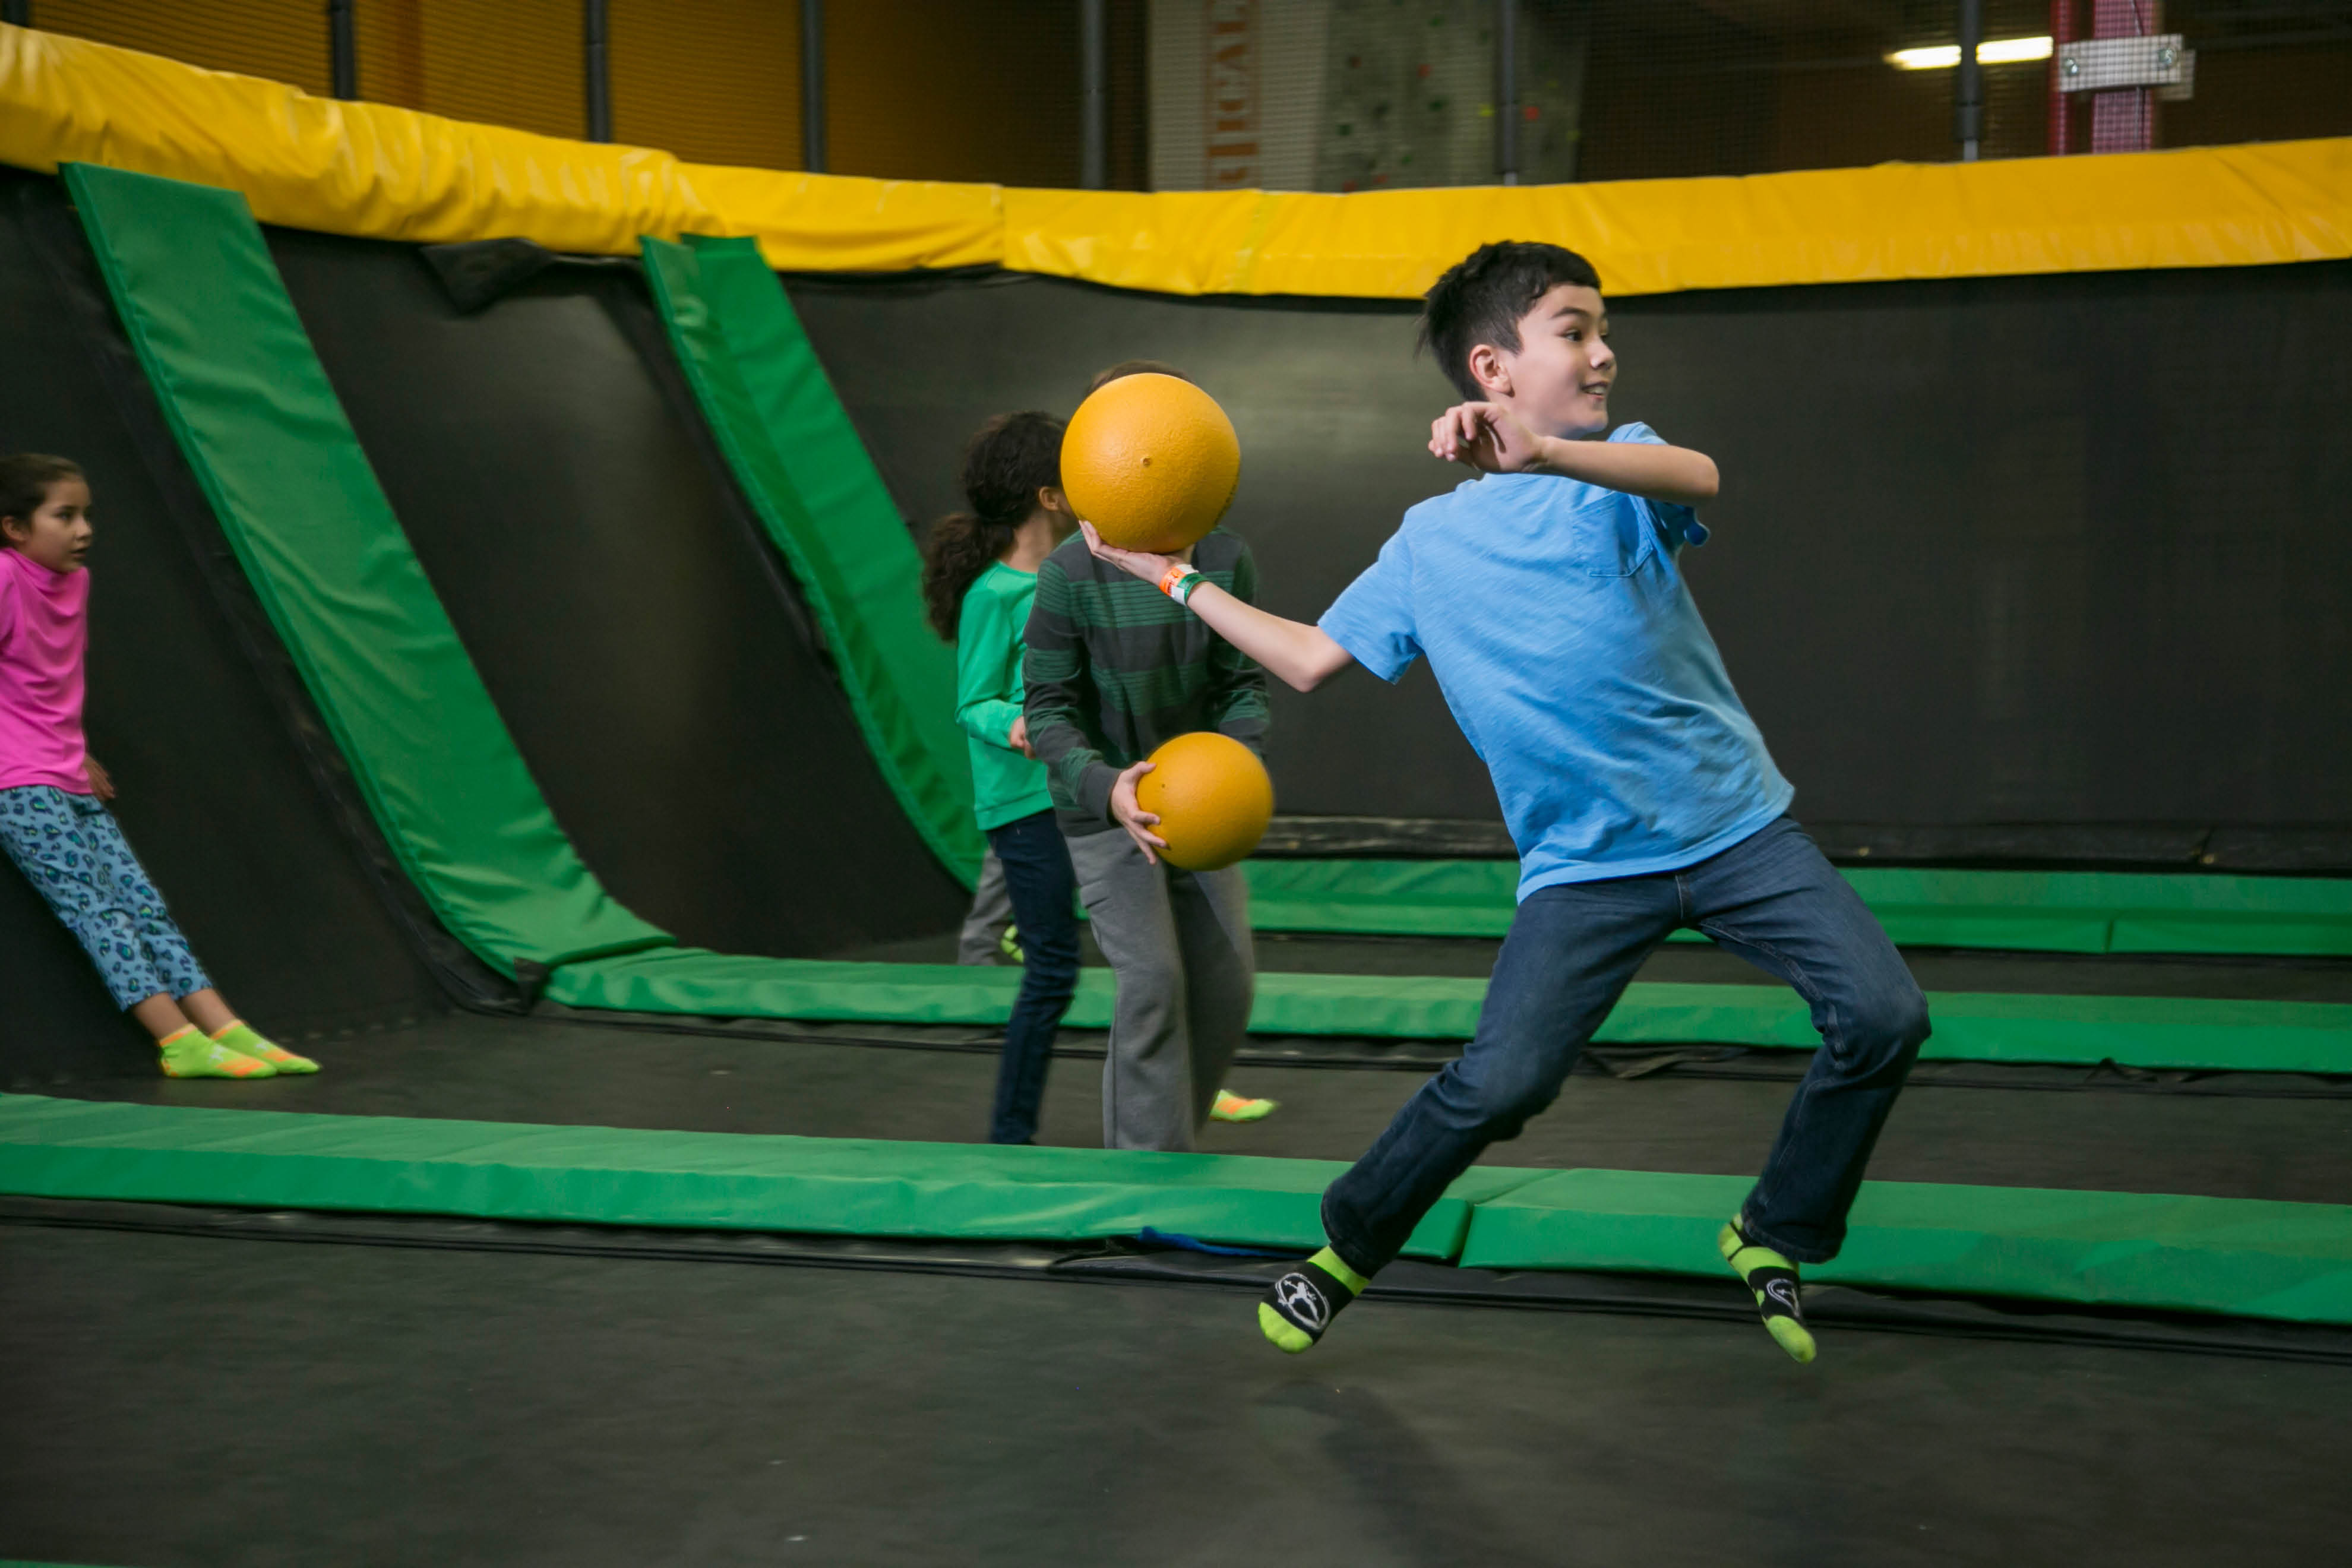 Family fun center and trampoline park with dodgeball in WAYNE, NJ NEXT TO WILLOWBROOK MALL